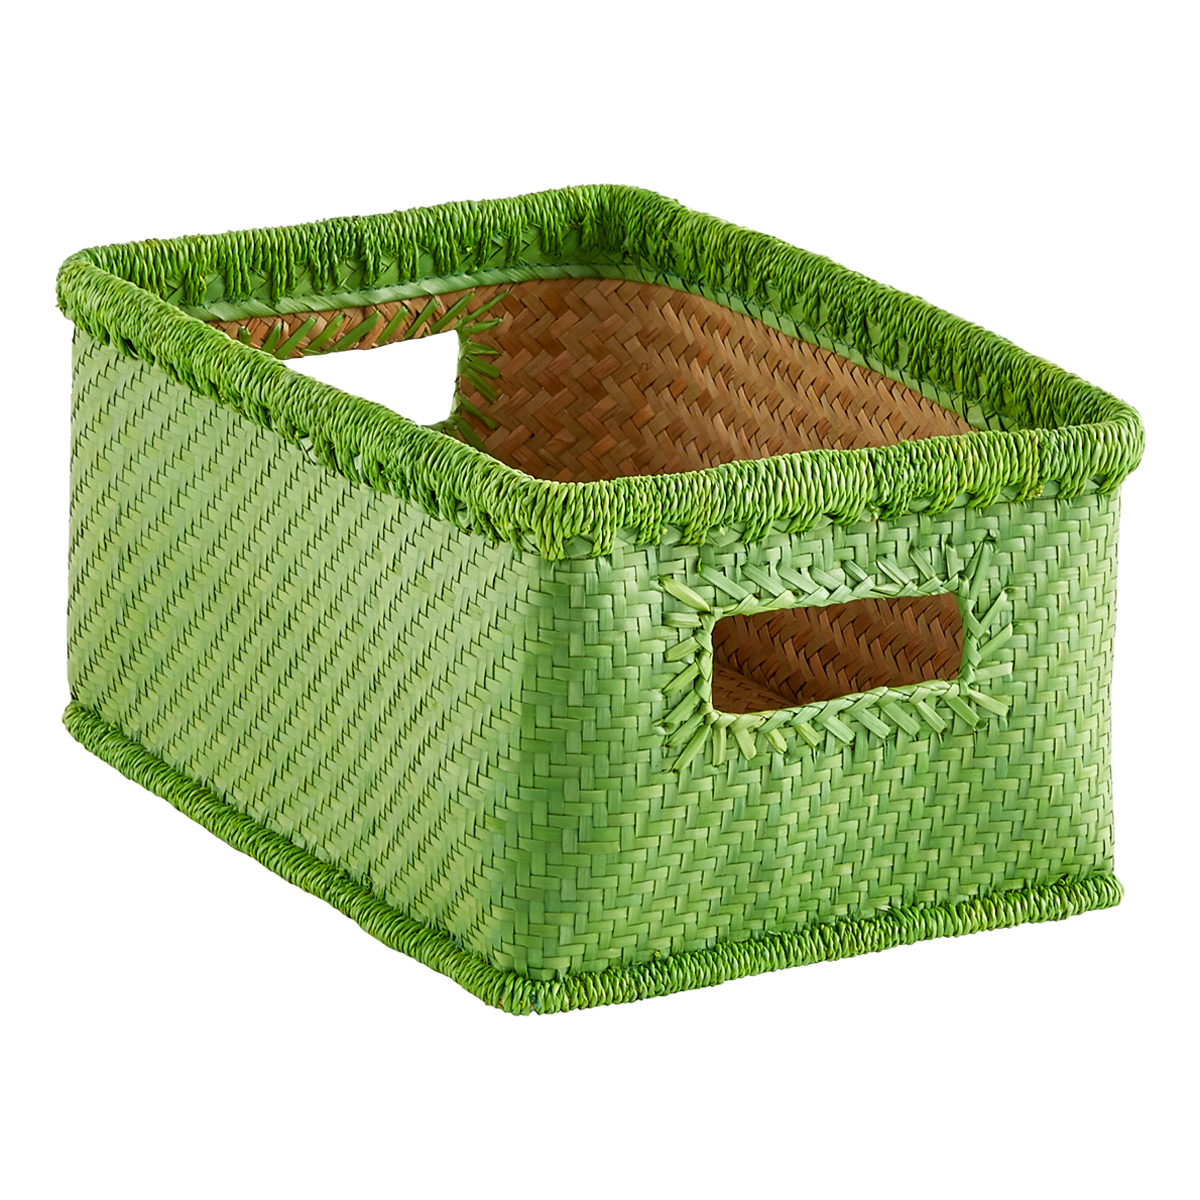 Small Palm Leaf Woven Storage Bins With Handles